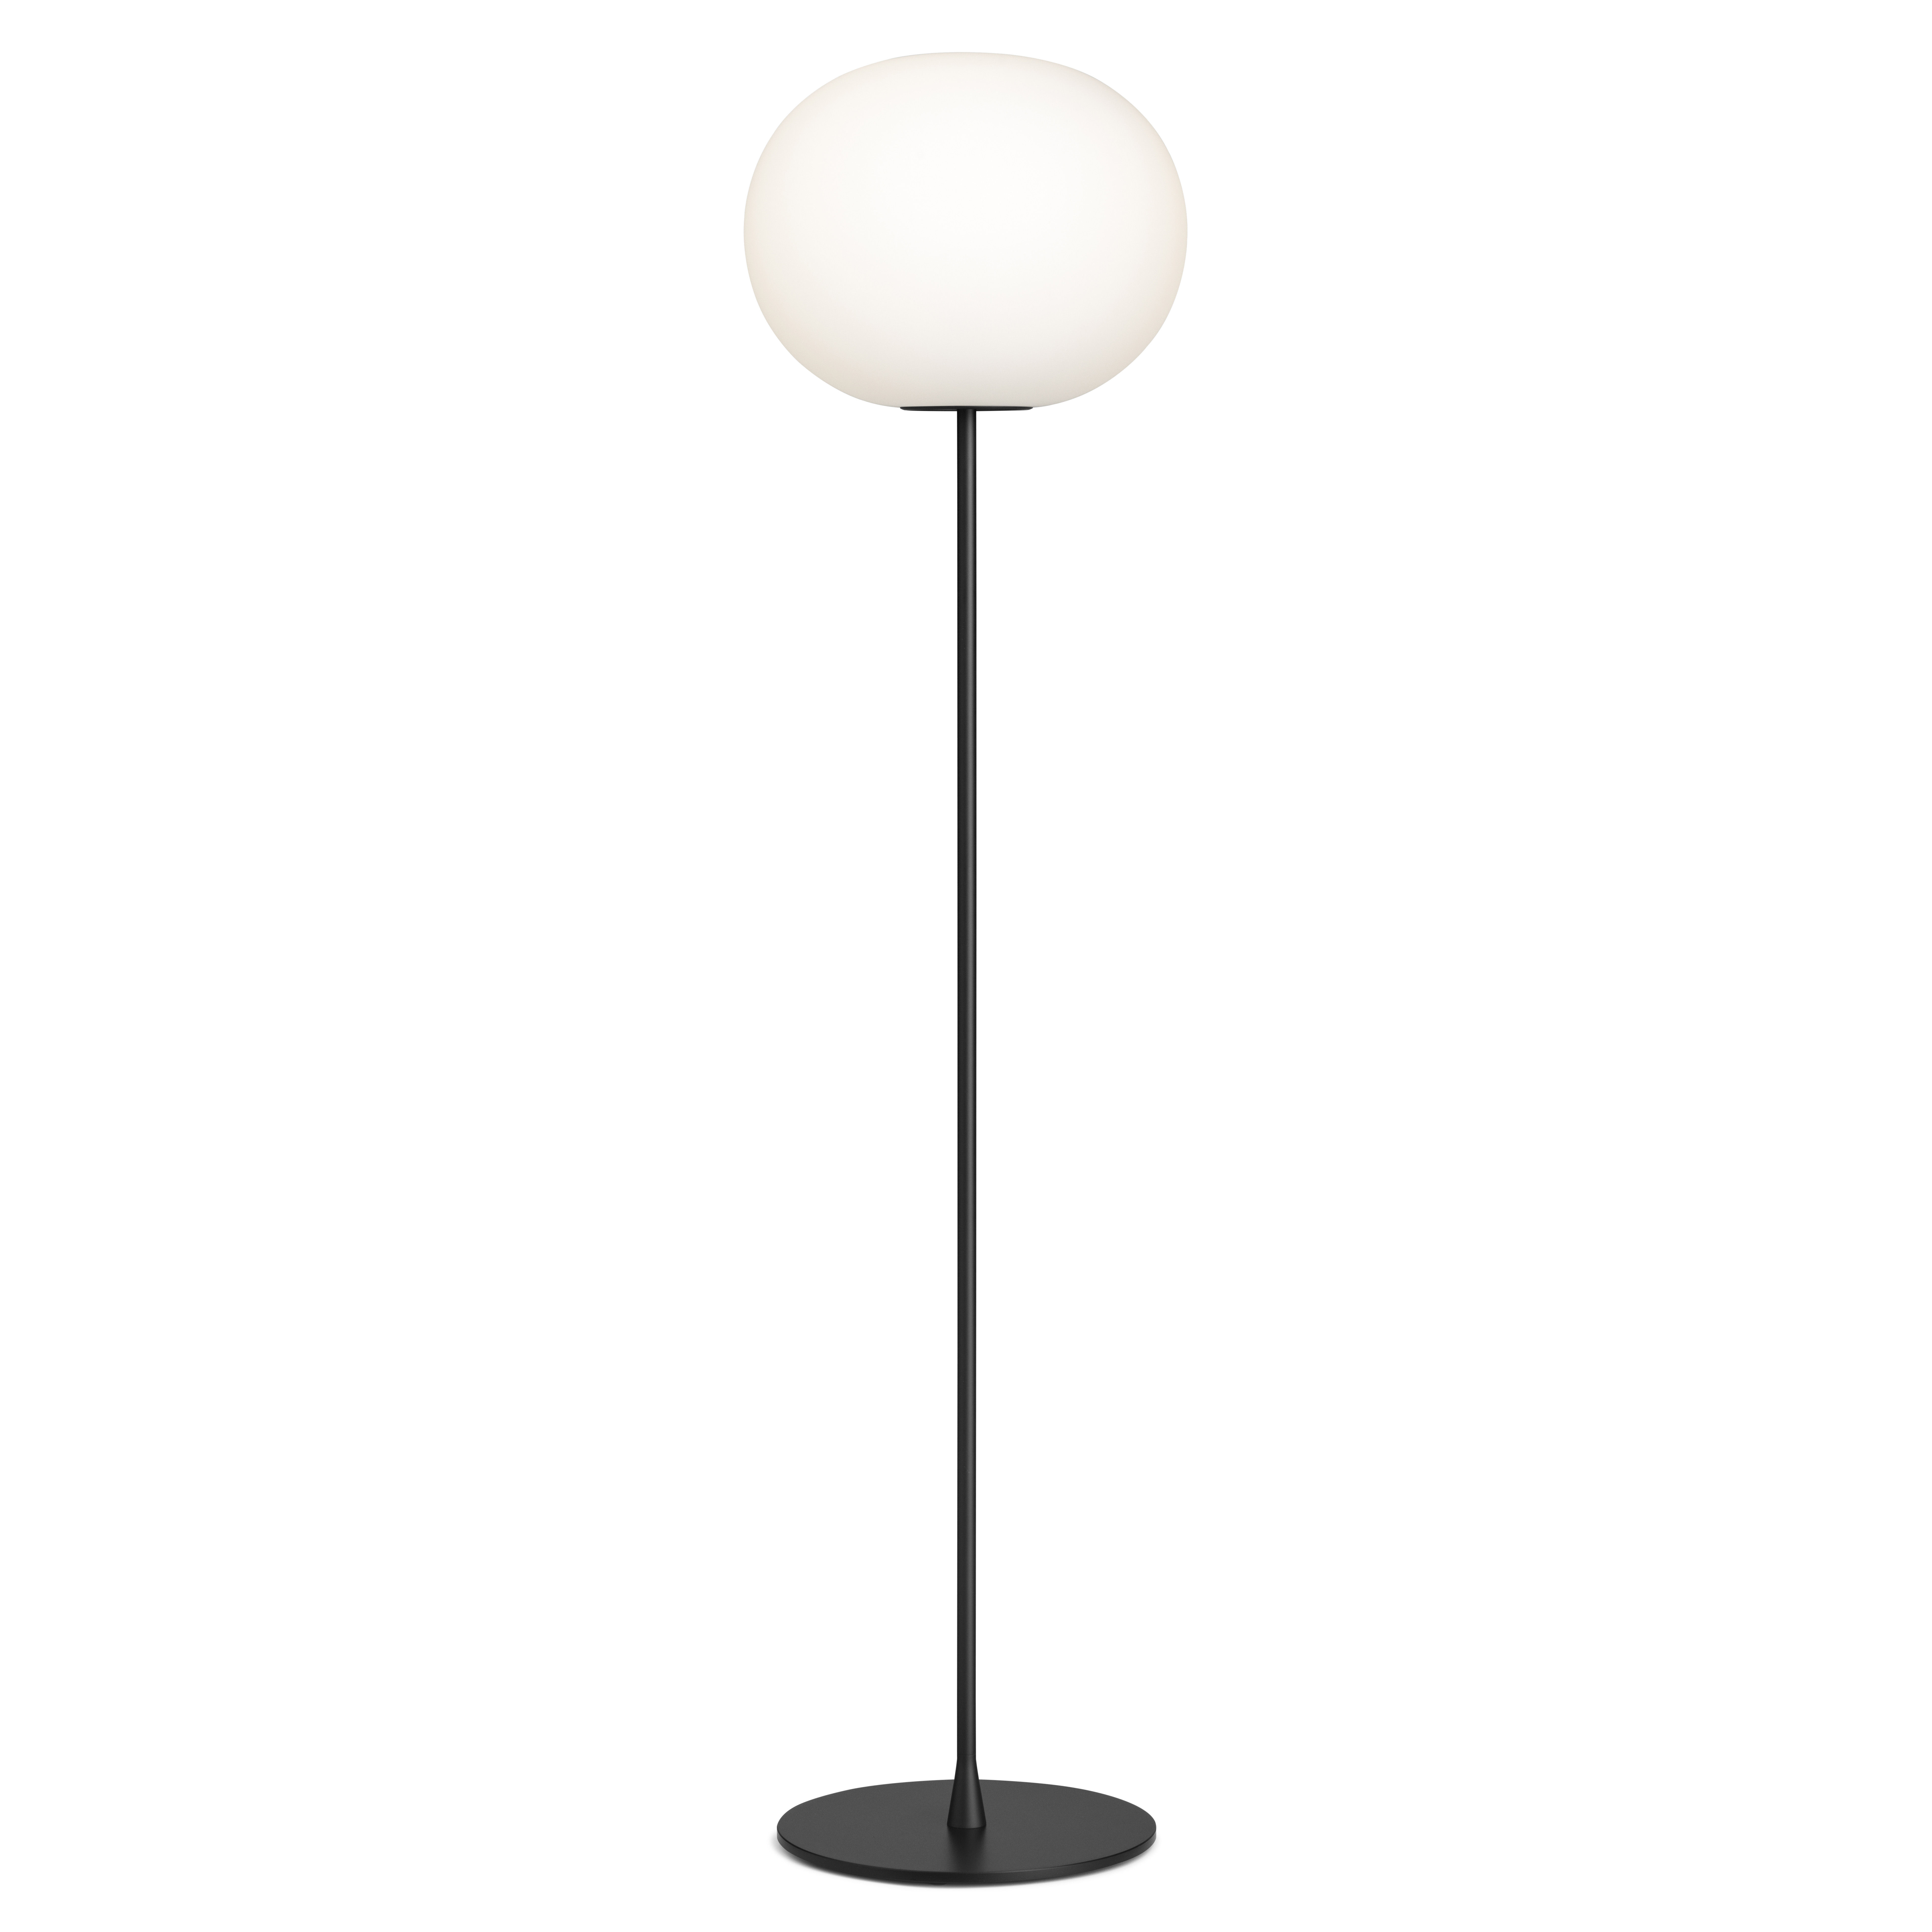 Lighting - Floor lamps - Glo-Ball F3 Floor lamp - / H 185 cm -Mouth-blown glass by Flos - Black - Mouth blown glass, Varnished steel